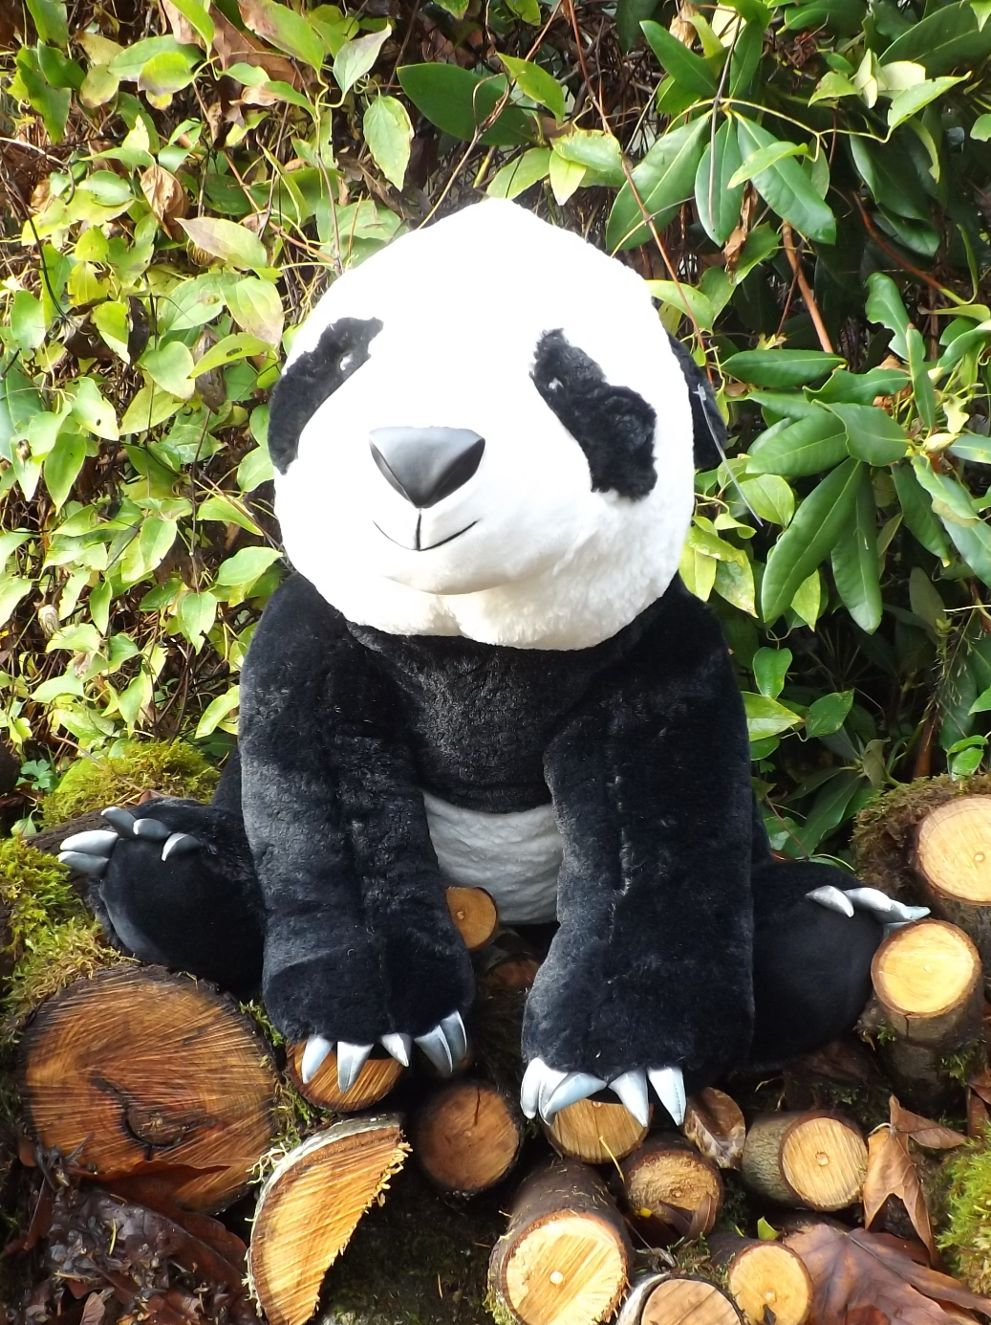 Z3904-Large-Stuffed-Panda-Bear-with-Claws